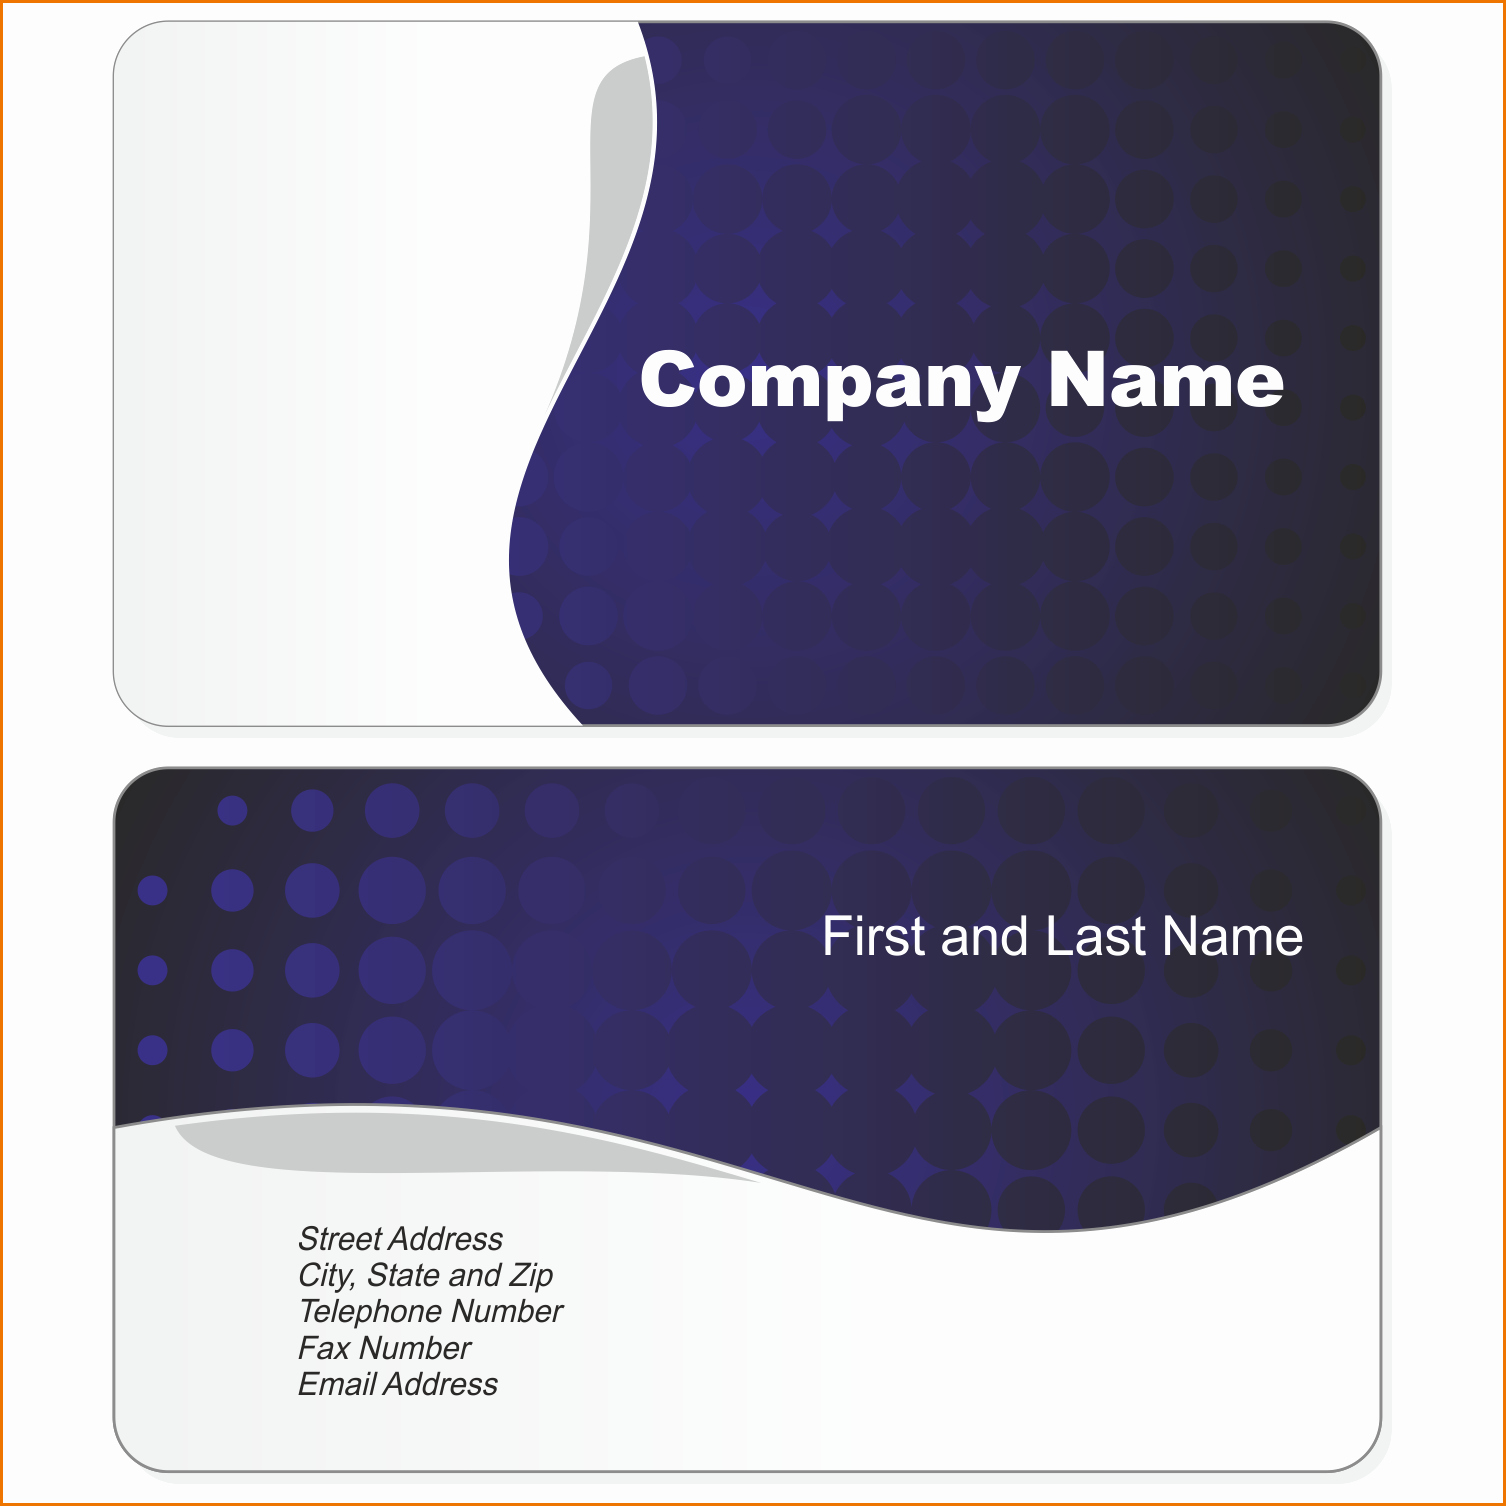 Word Template for Business Cards Unique Business Card Layout Template Word Beautiful Template